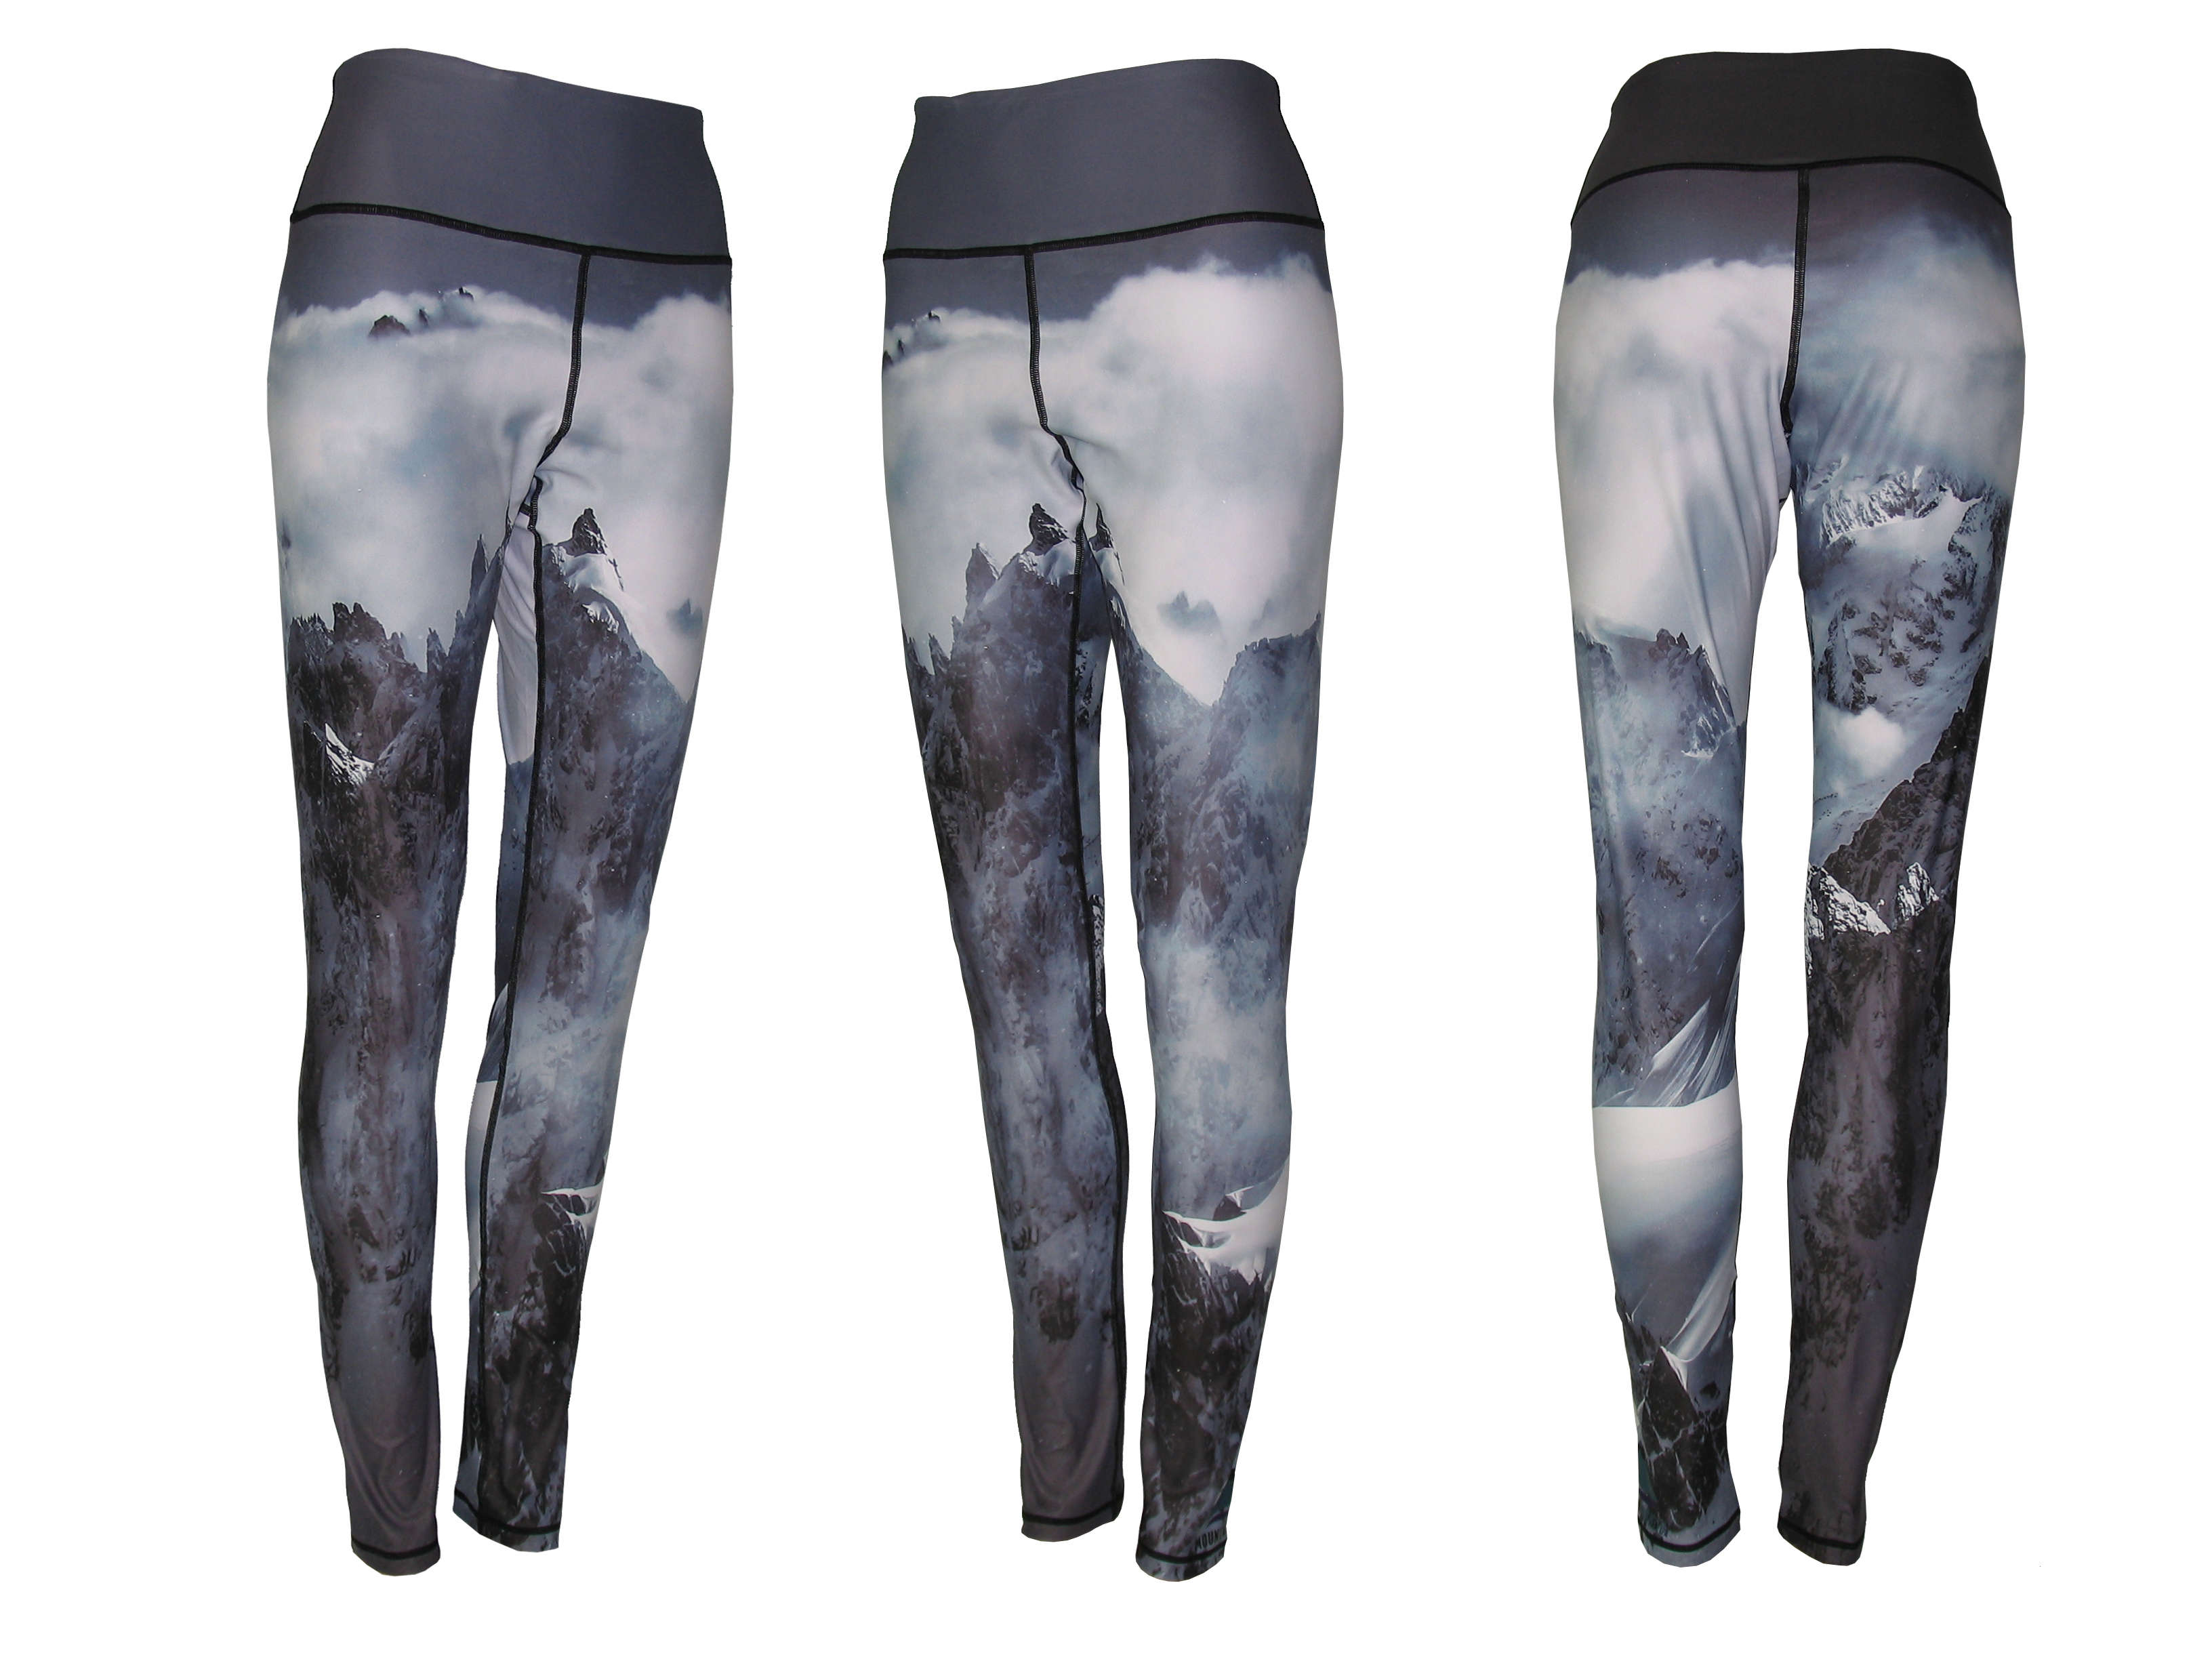 92ab218a24629 Jagged Edge Yoga Pants All Sport Leggings image taking a helicopter ride to  a beautiful panoramic